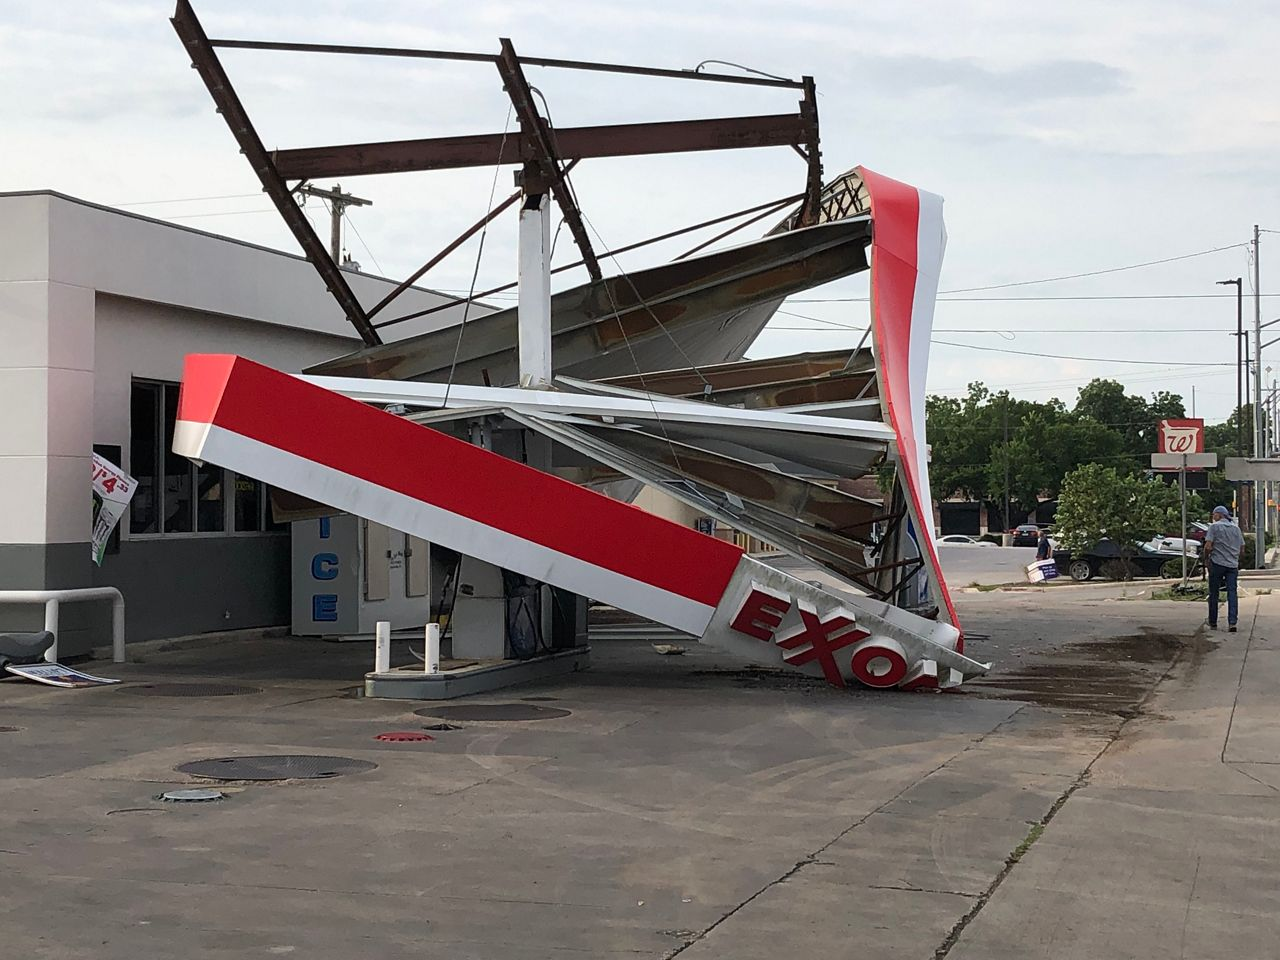 The roof of an Exxon Gas Station was destroyed by strong winds in Lockhart, Texas on Sunday.